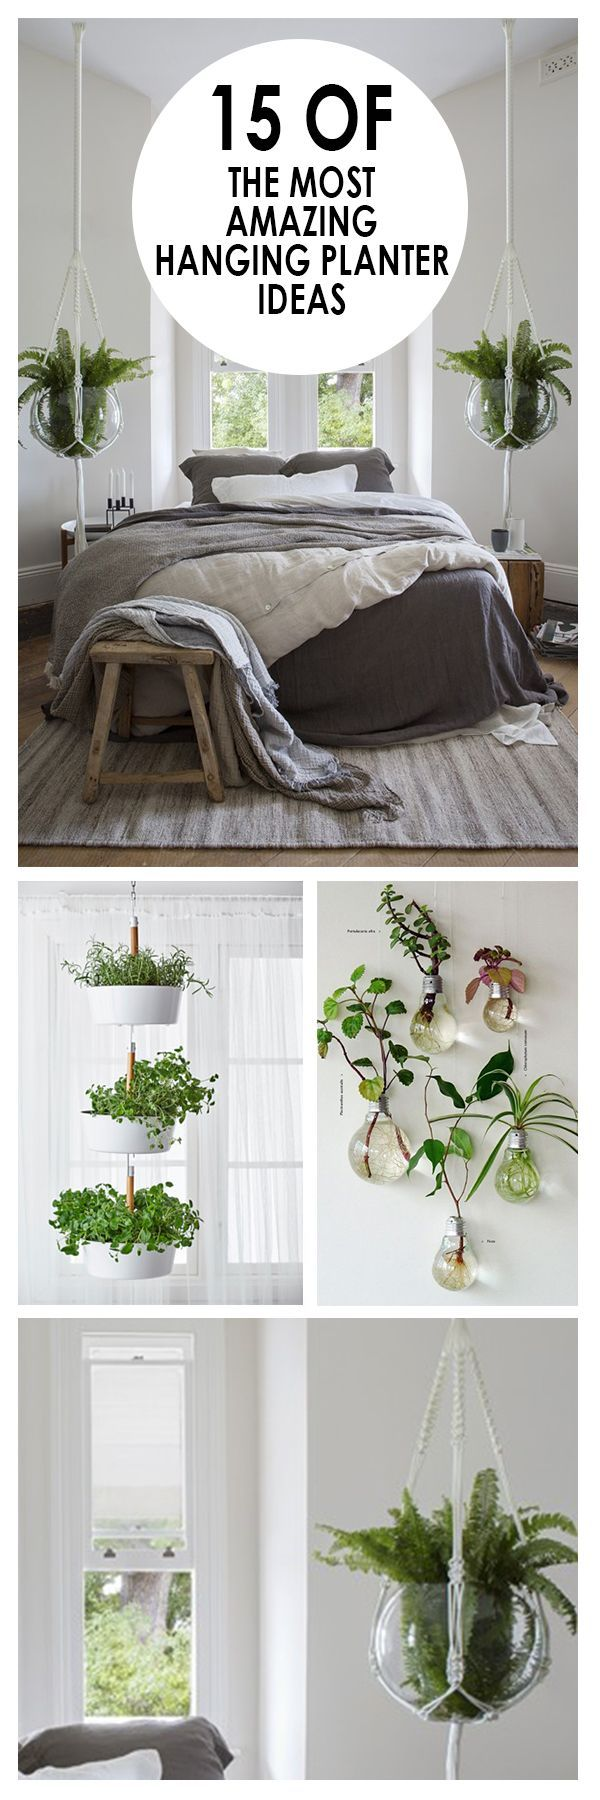 15 of the most amazing hanging planter ideas diy pinterest drinnen drau en und pflanzen. Black Bedroom Furniture Sets. Home Design Ideas